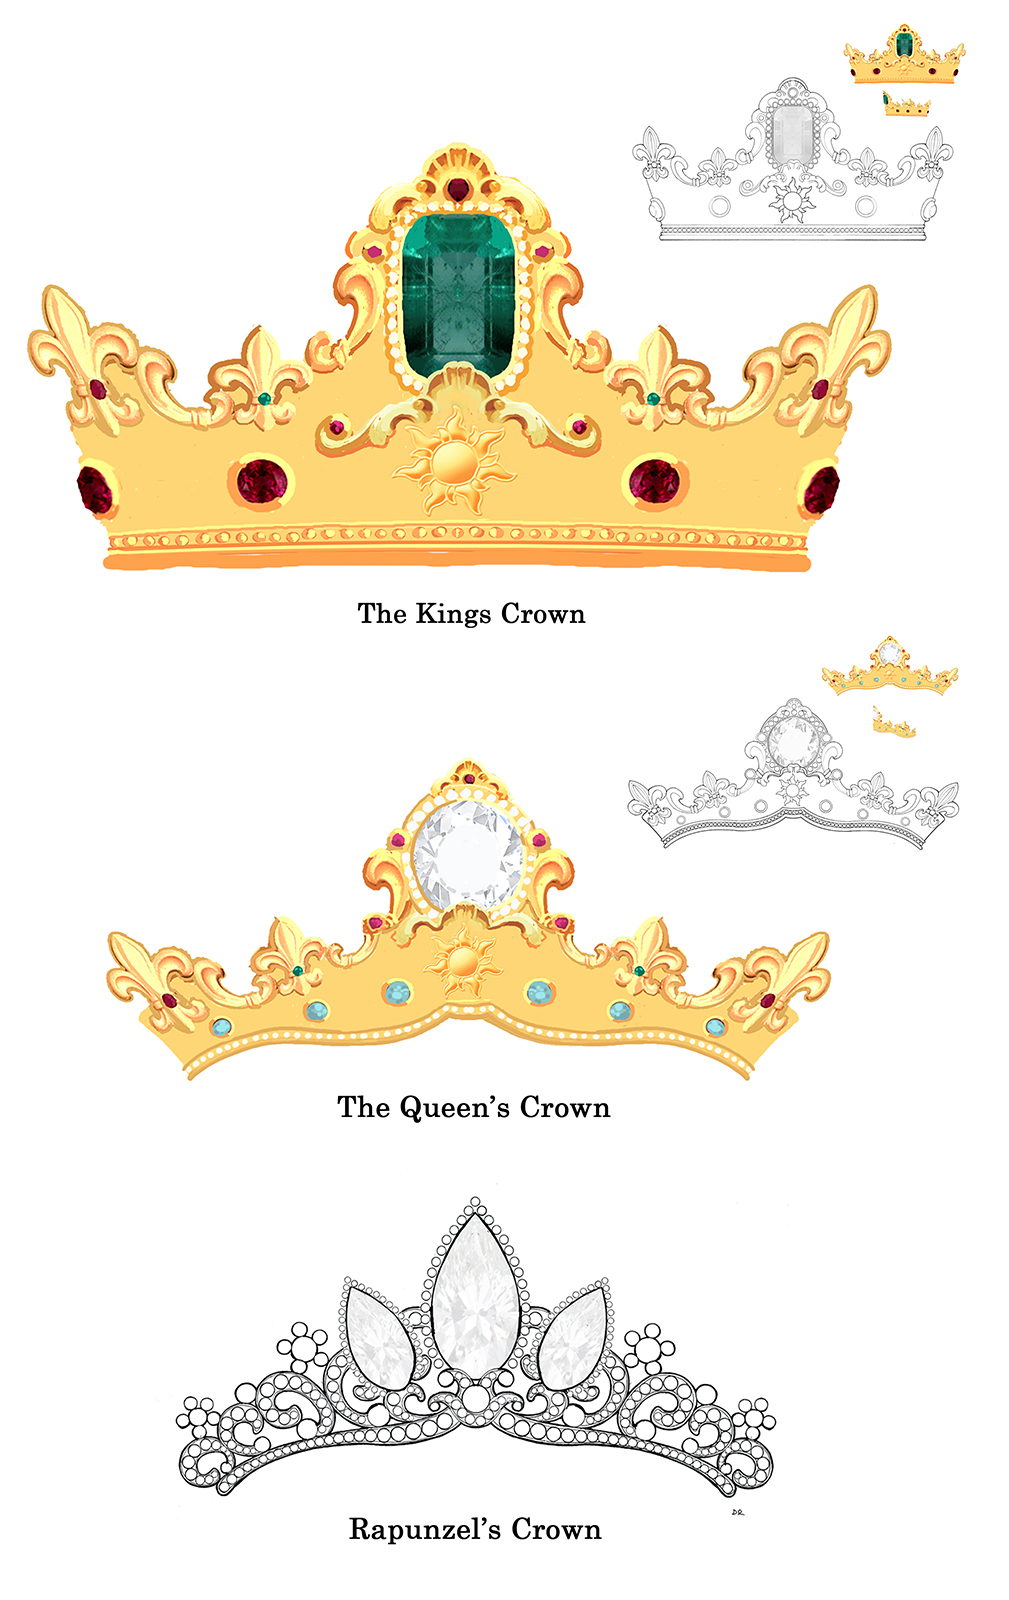 The Kings Crown, The Queen's Crown, Rapunzel's Crown